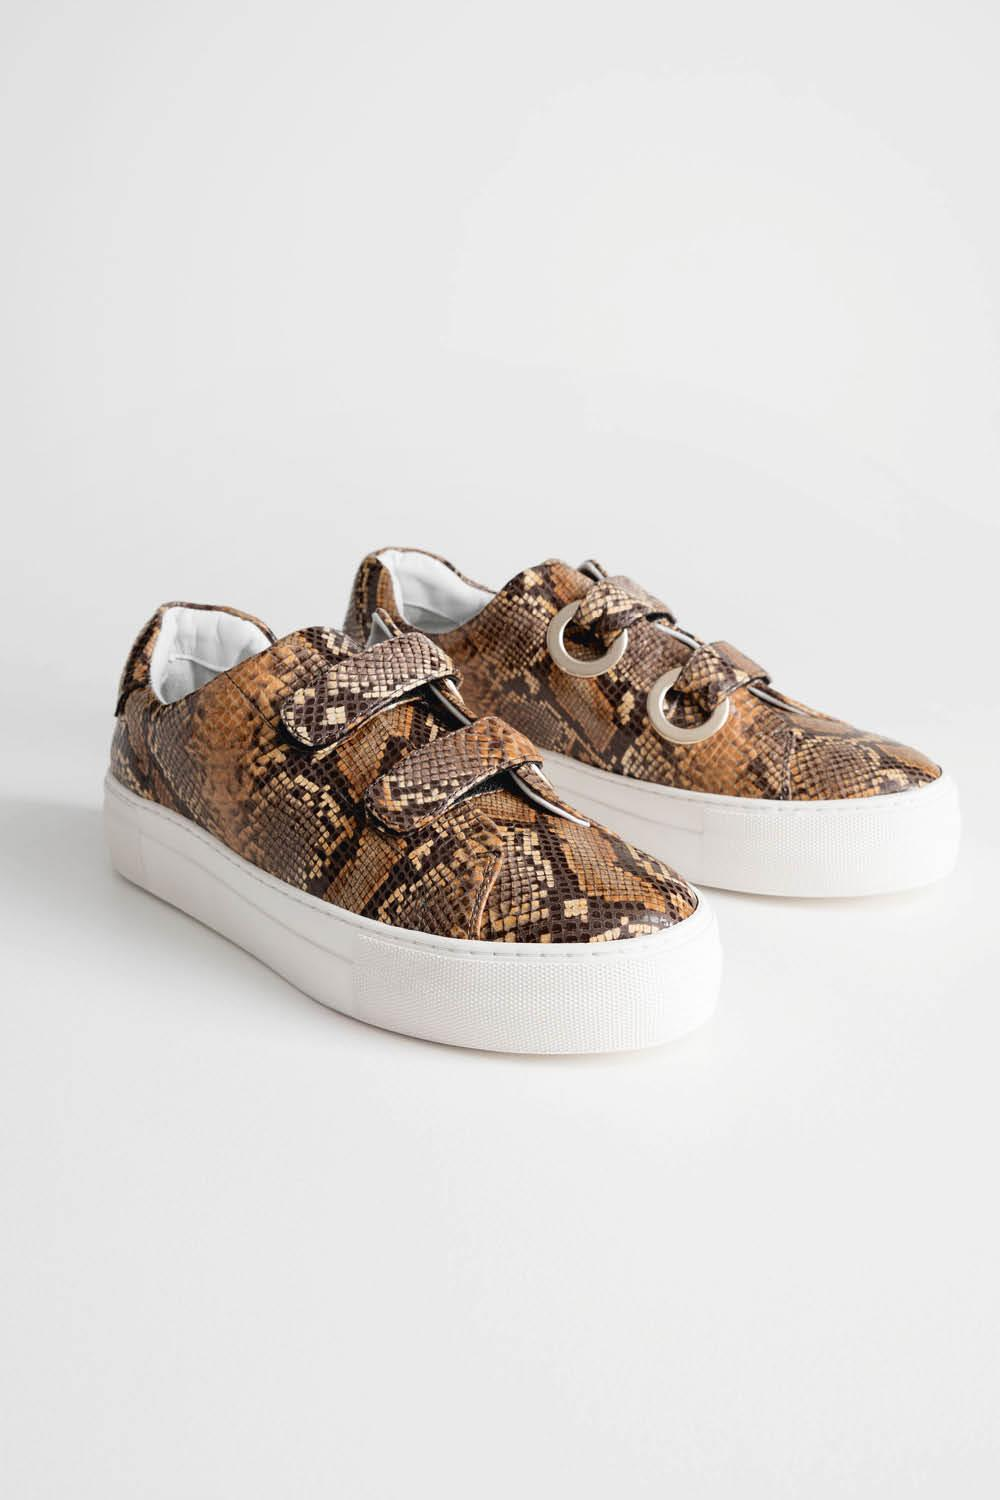 Snake Scratch Strap Sneakers 89 euros other stories. Con velcro